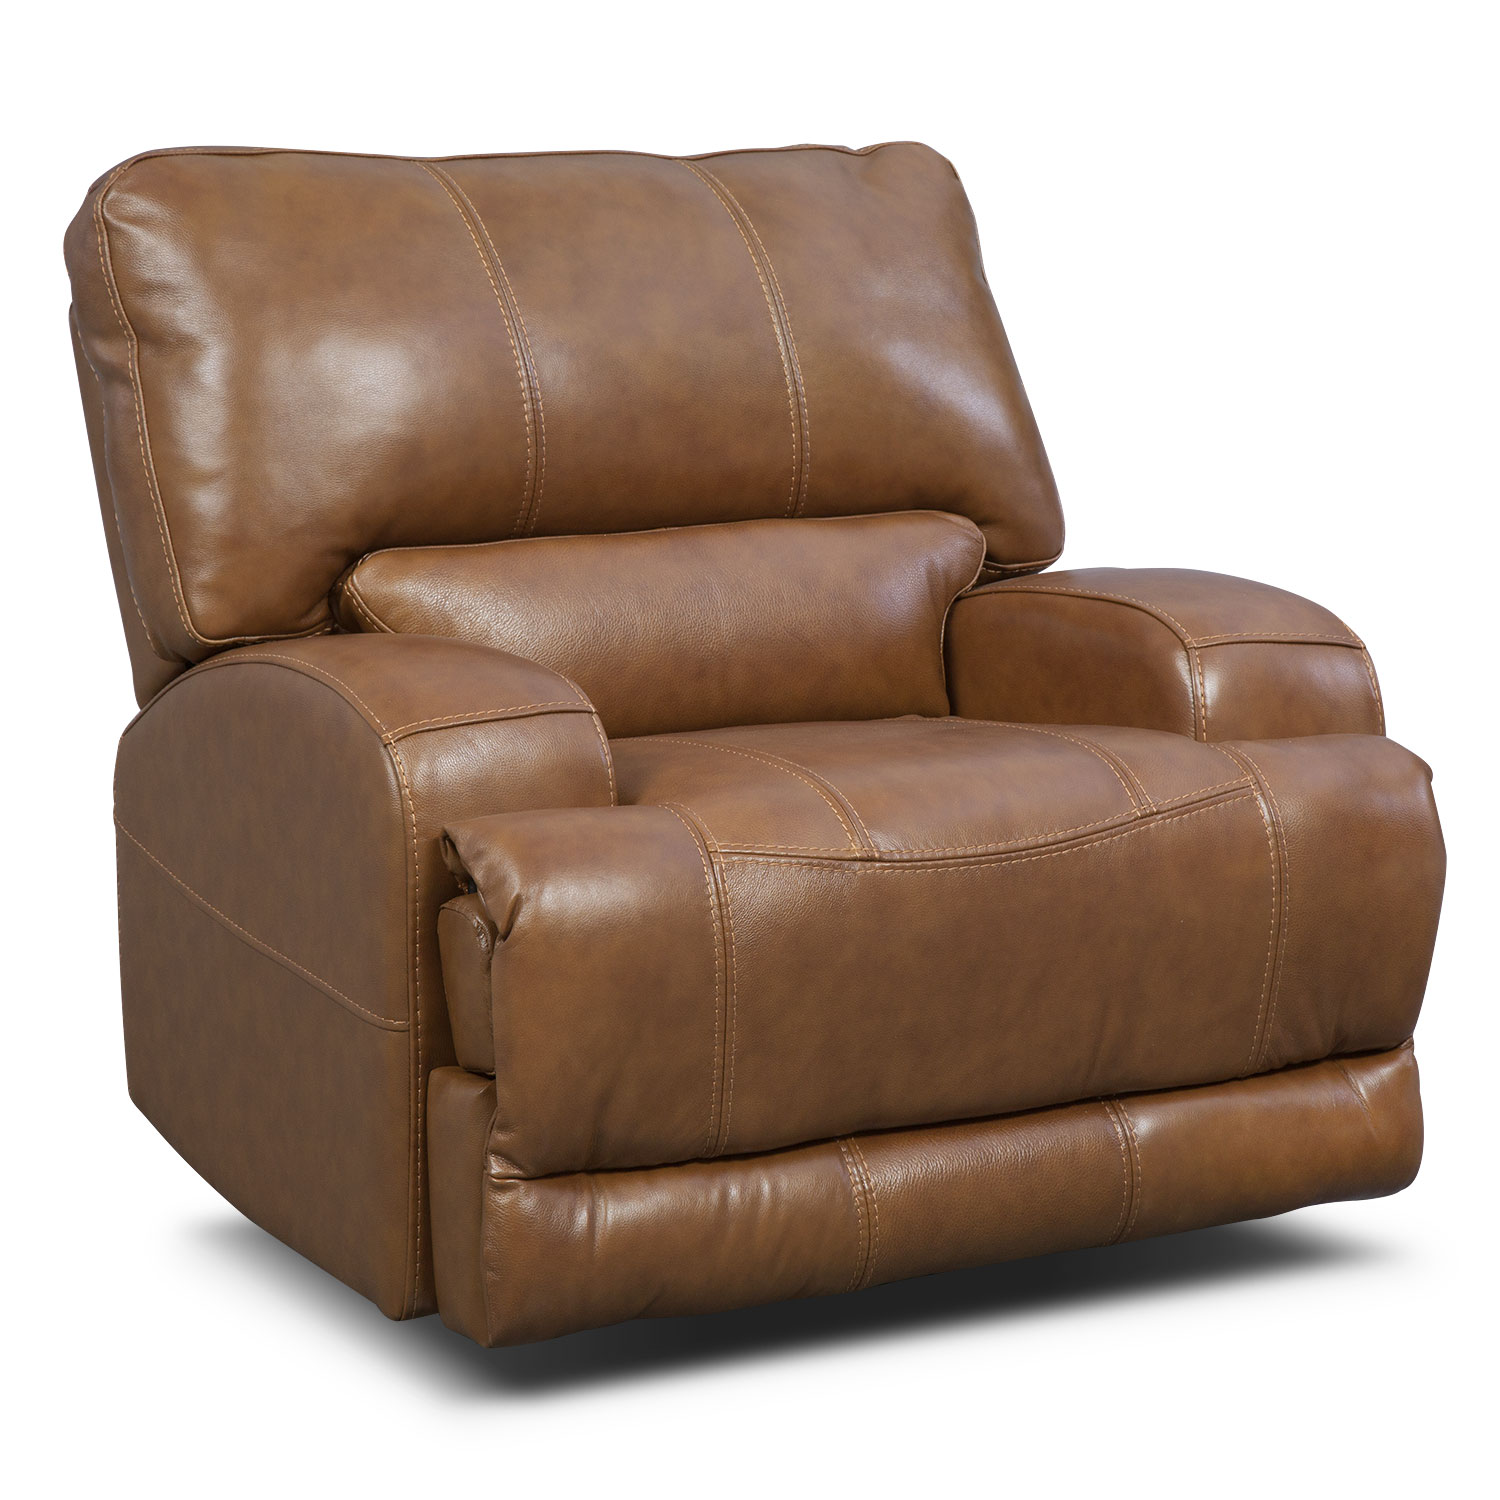 Living Room Furniture - Barton Camel Living Room Power Recliner